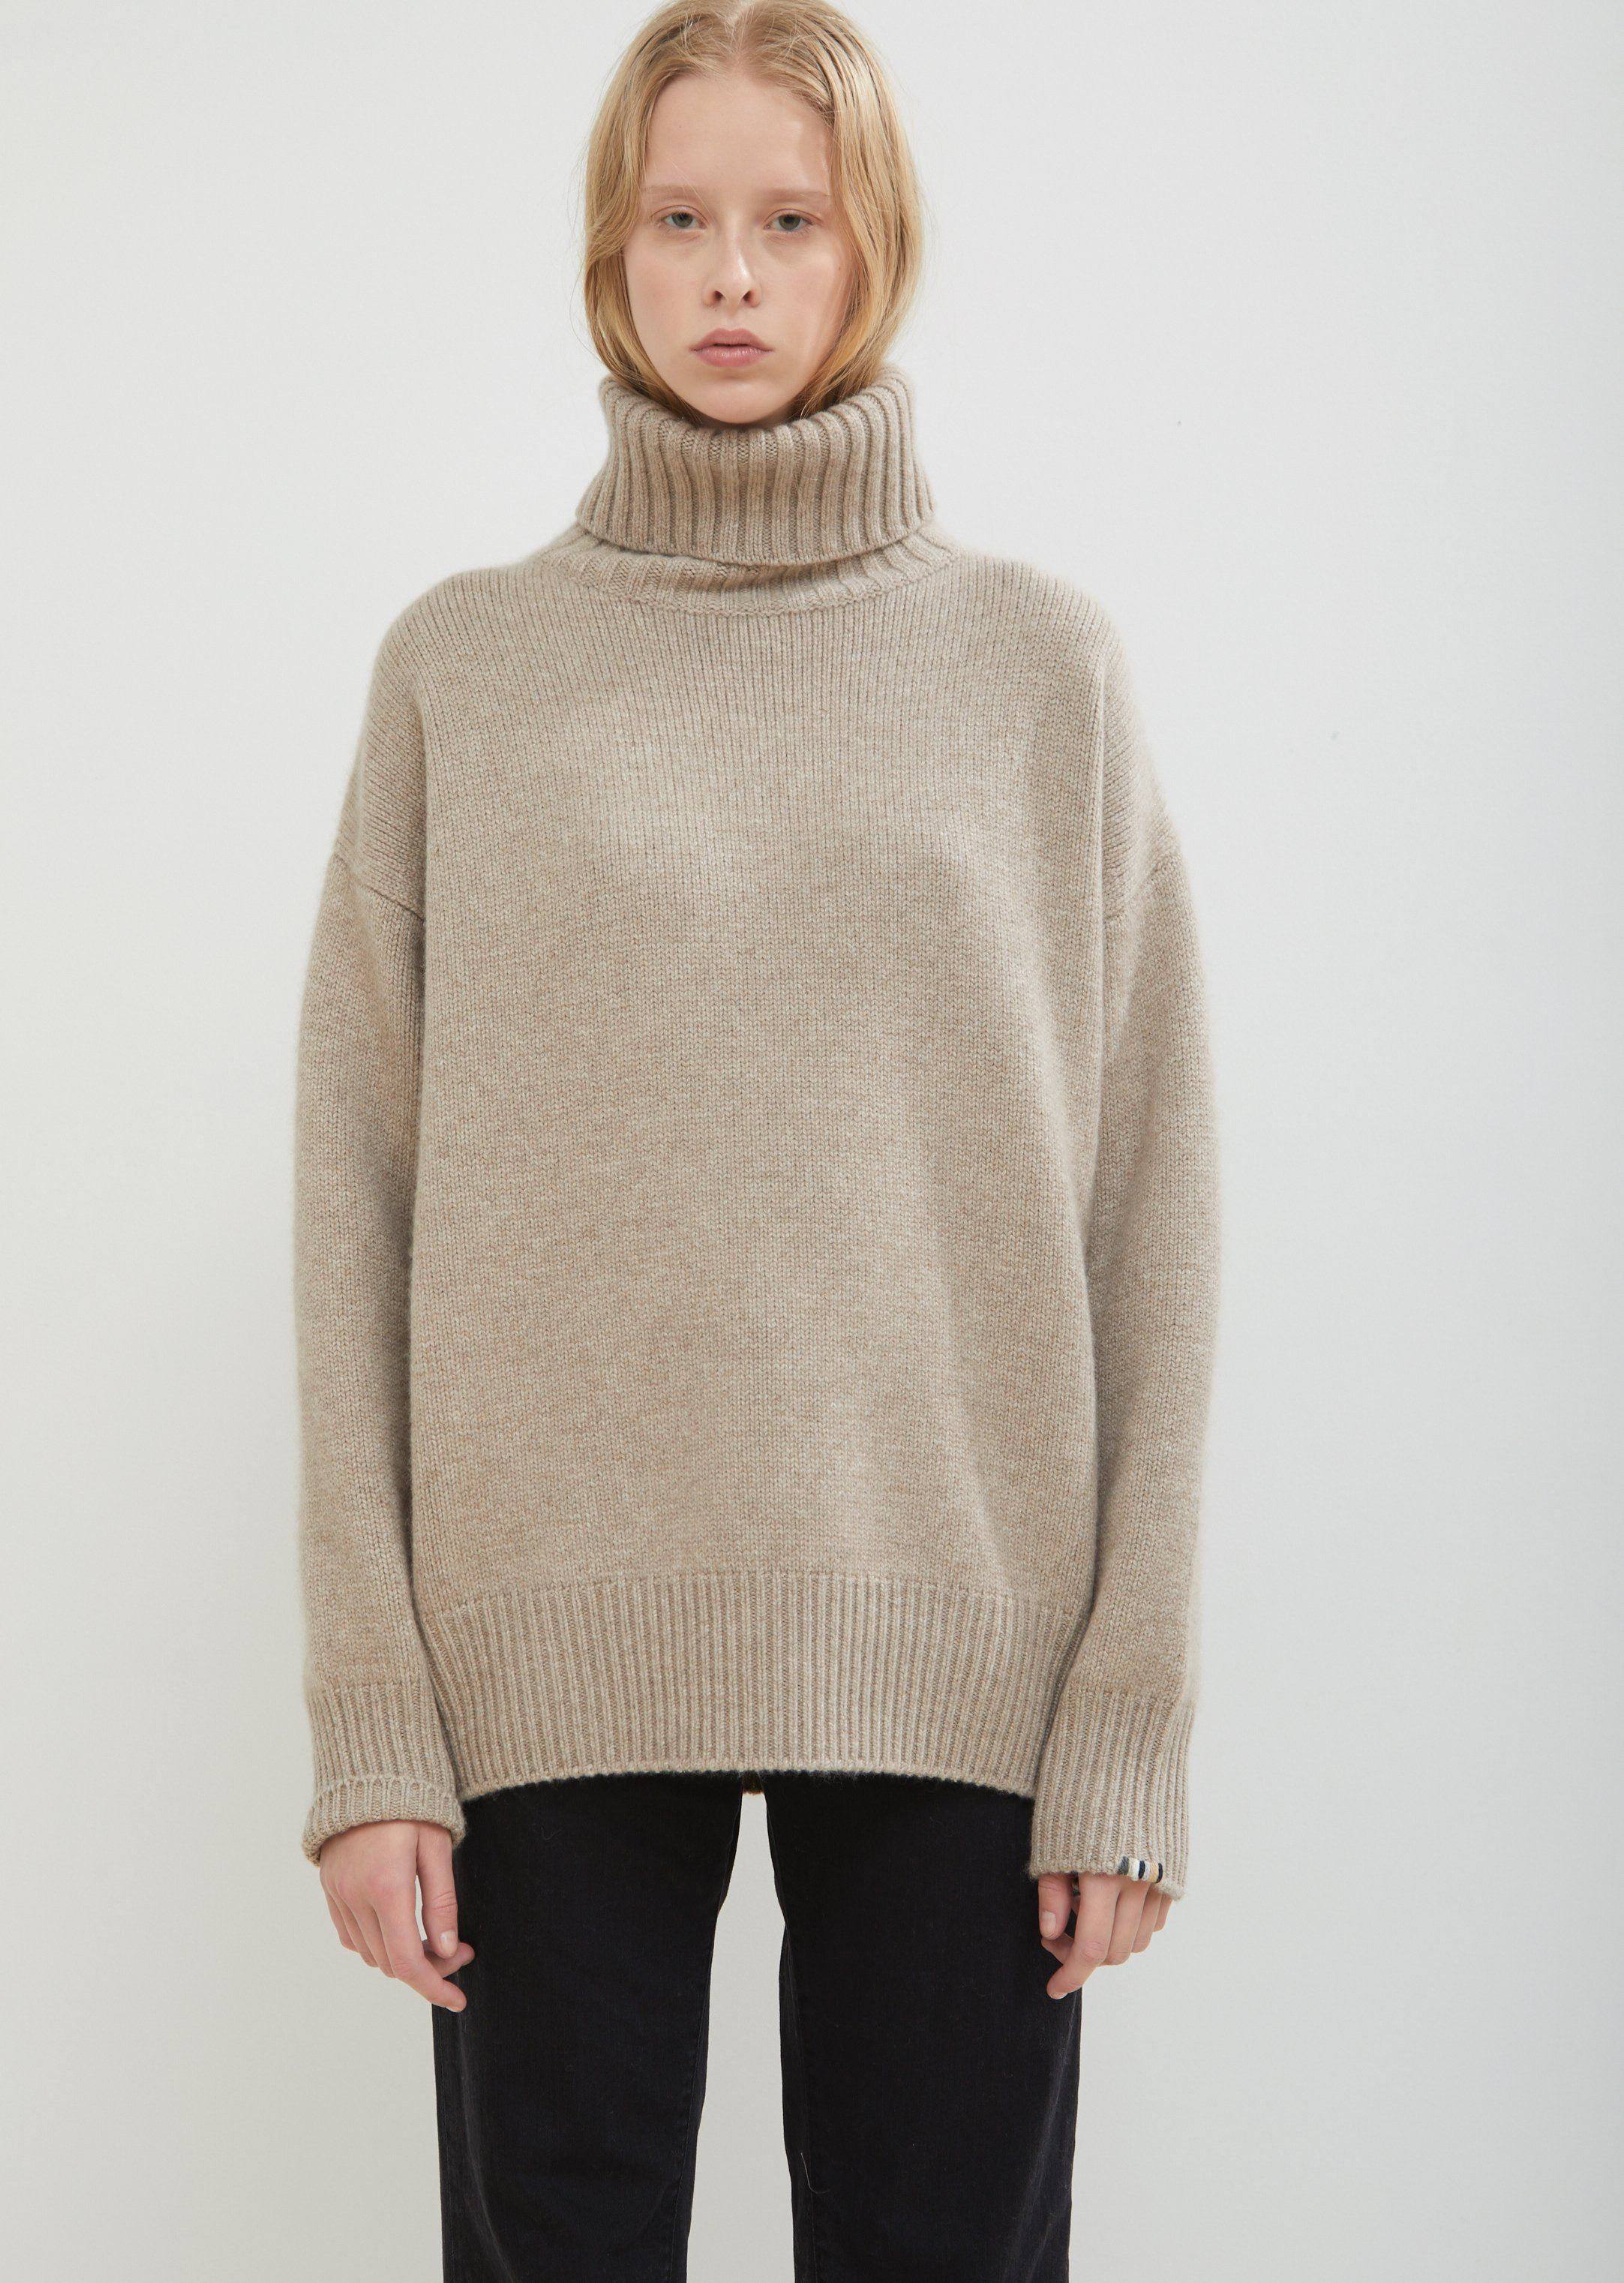 73ebb3895 Oversize Xtra Cashmere Roll Neck Sweater - One Size   Oat